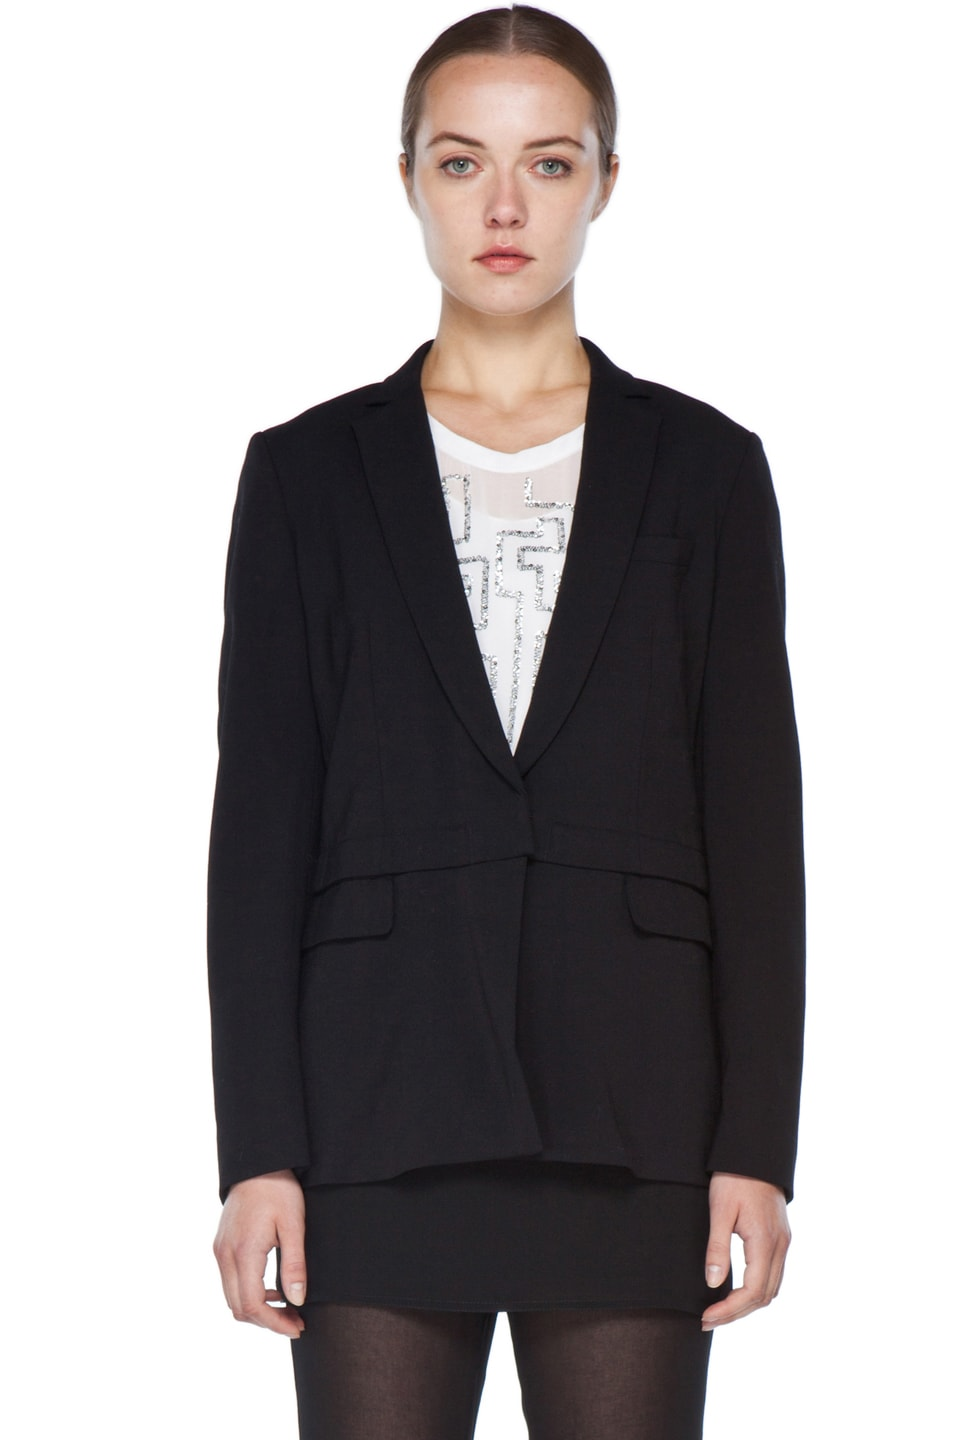 Image 2 of 3.1 phillip lim Blazer with Detachable Lower Panel in Black